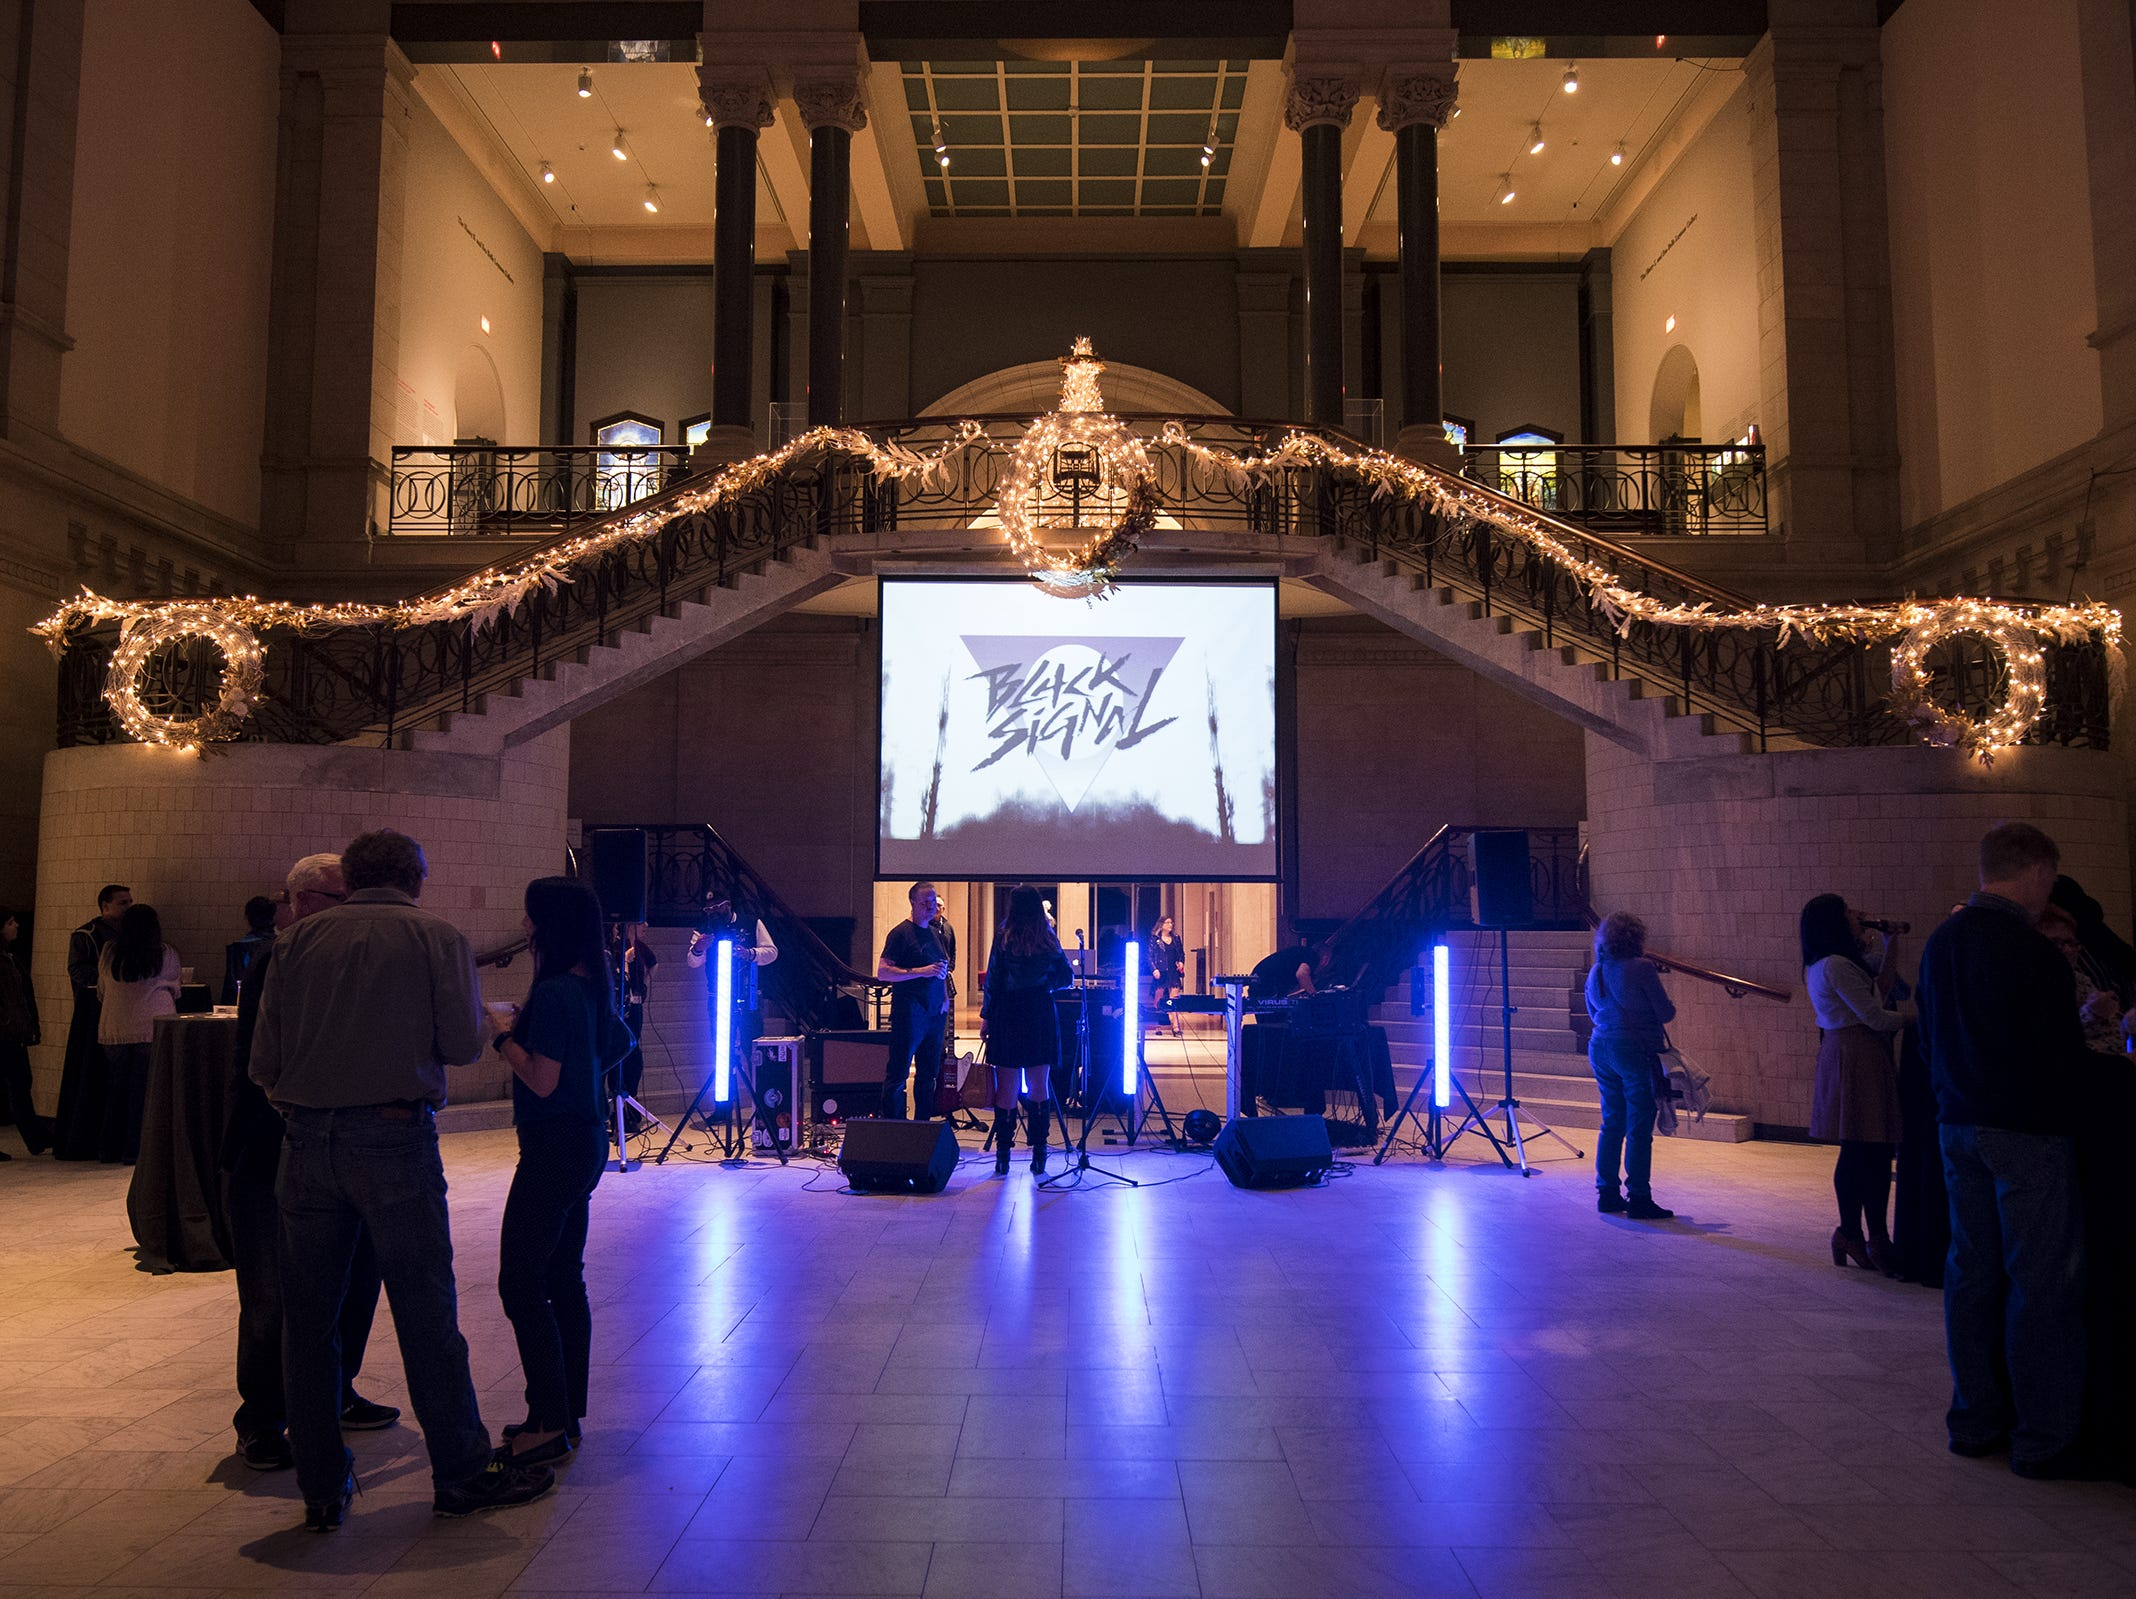 The band Black Signal sets up for their set at Art After Dark: Confess Yourself at the Cincinnati Art Museum Wednesday, November 21, 2018 in Cincinnati, Ohio. This is the last Art After Dark until the new year.